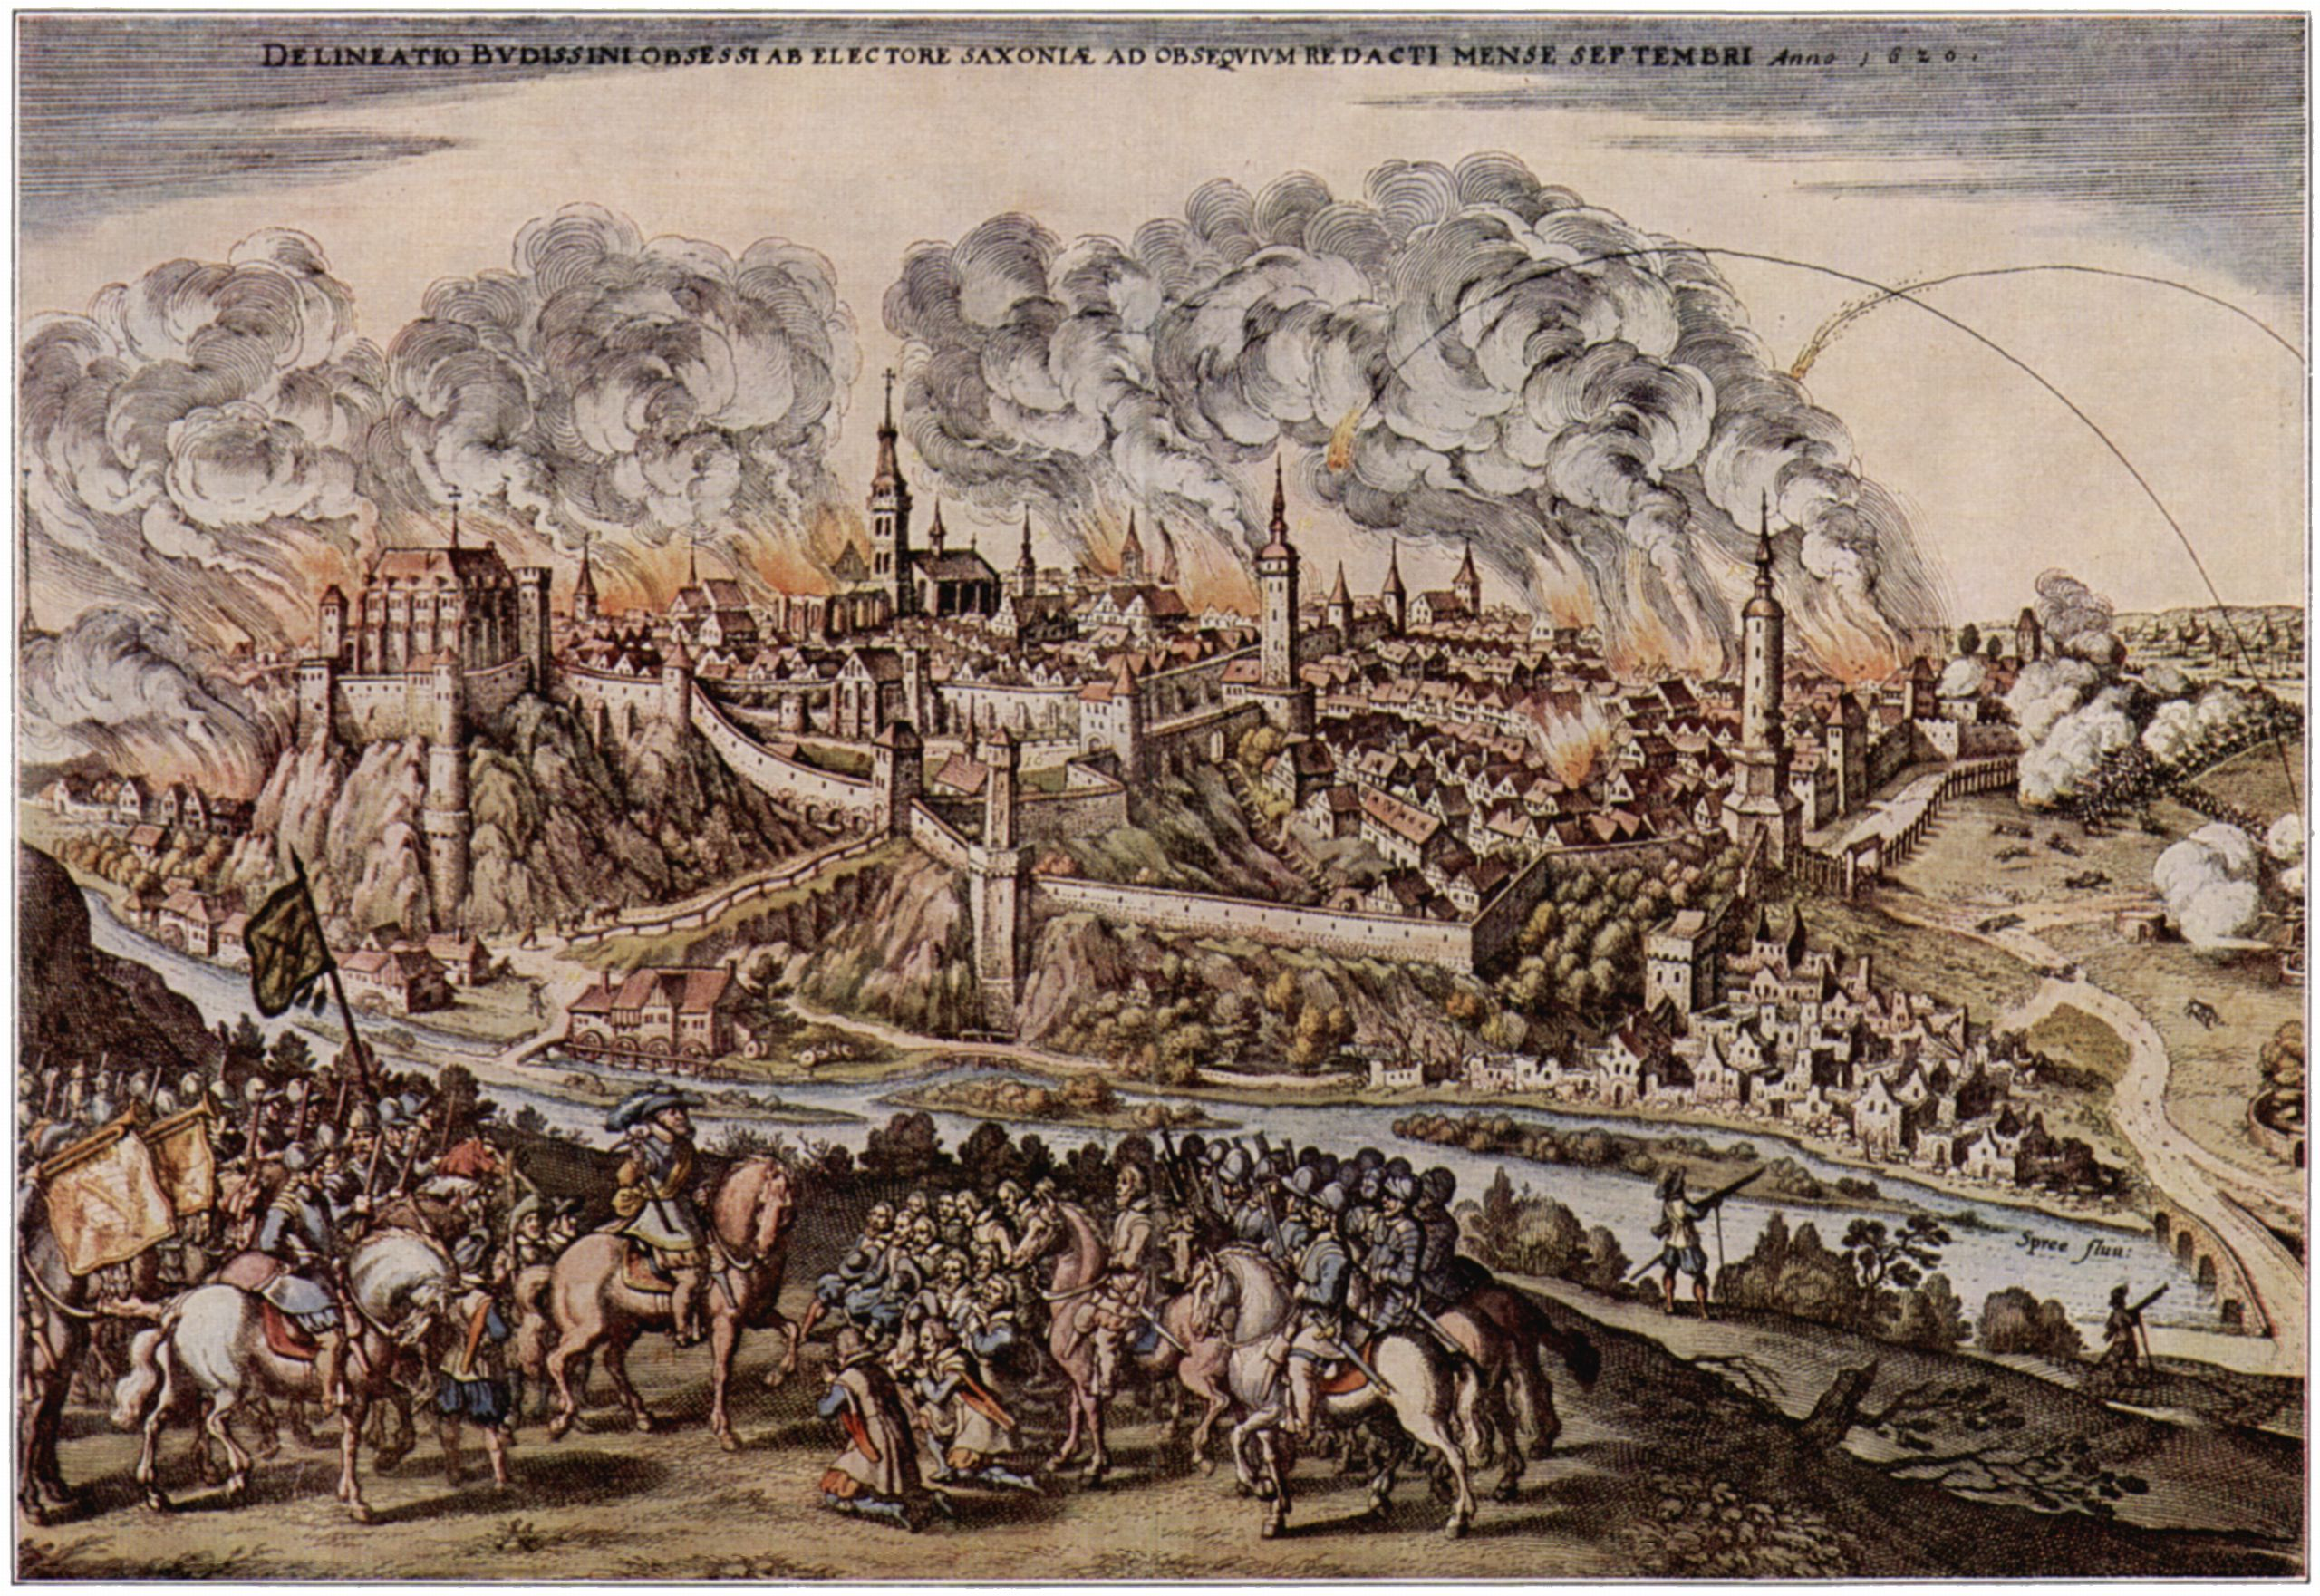 a history of the thirty years war in central europe The thirty years war (1618-48) was the most destructive european conflict prior to the twentieth century it reduced the population of central europe by around a.